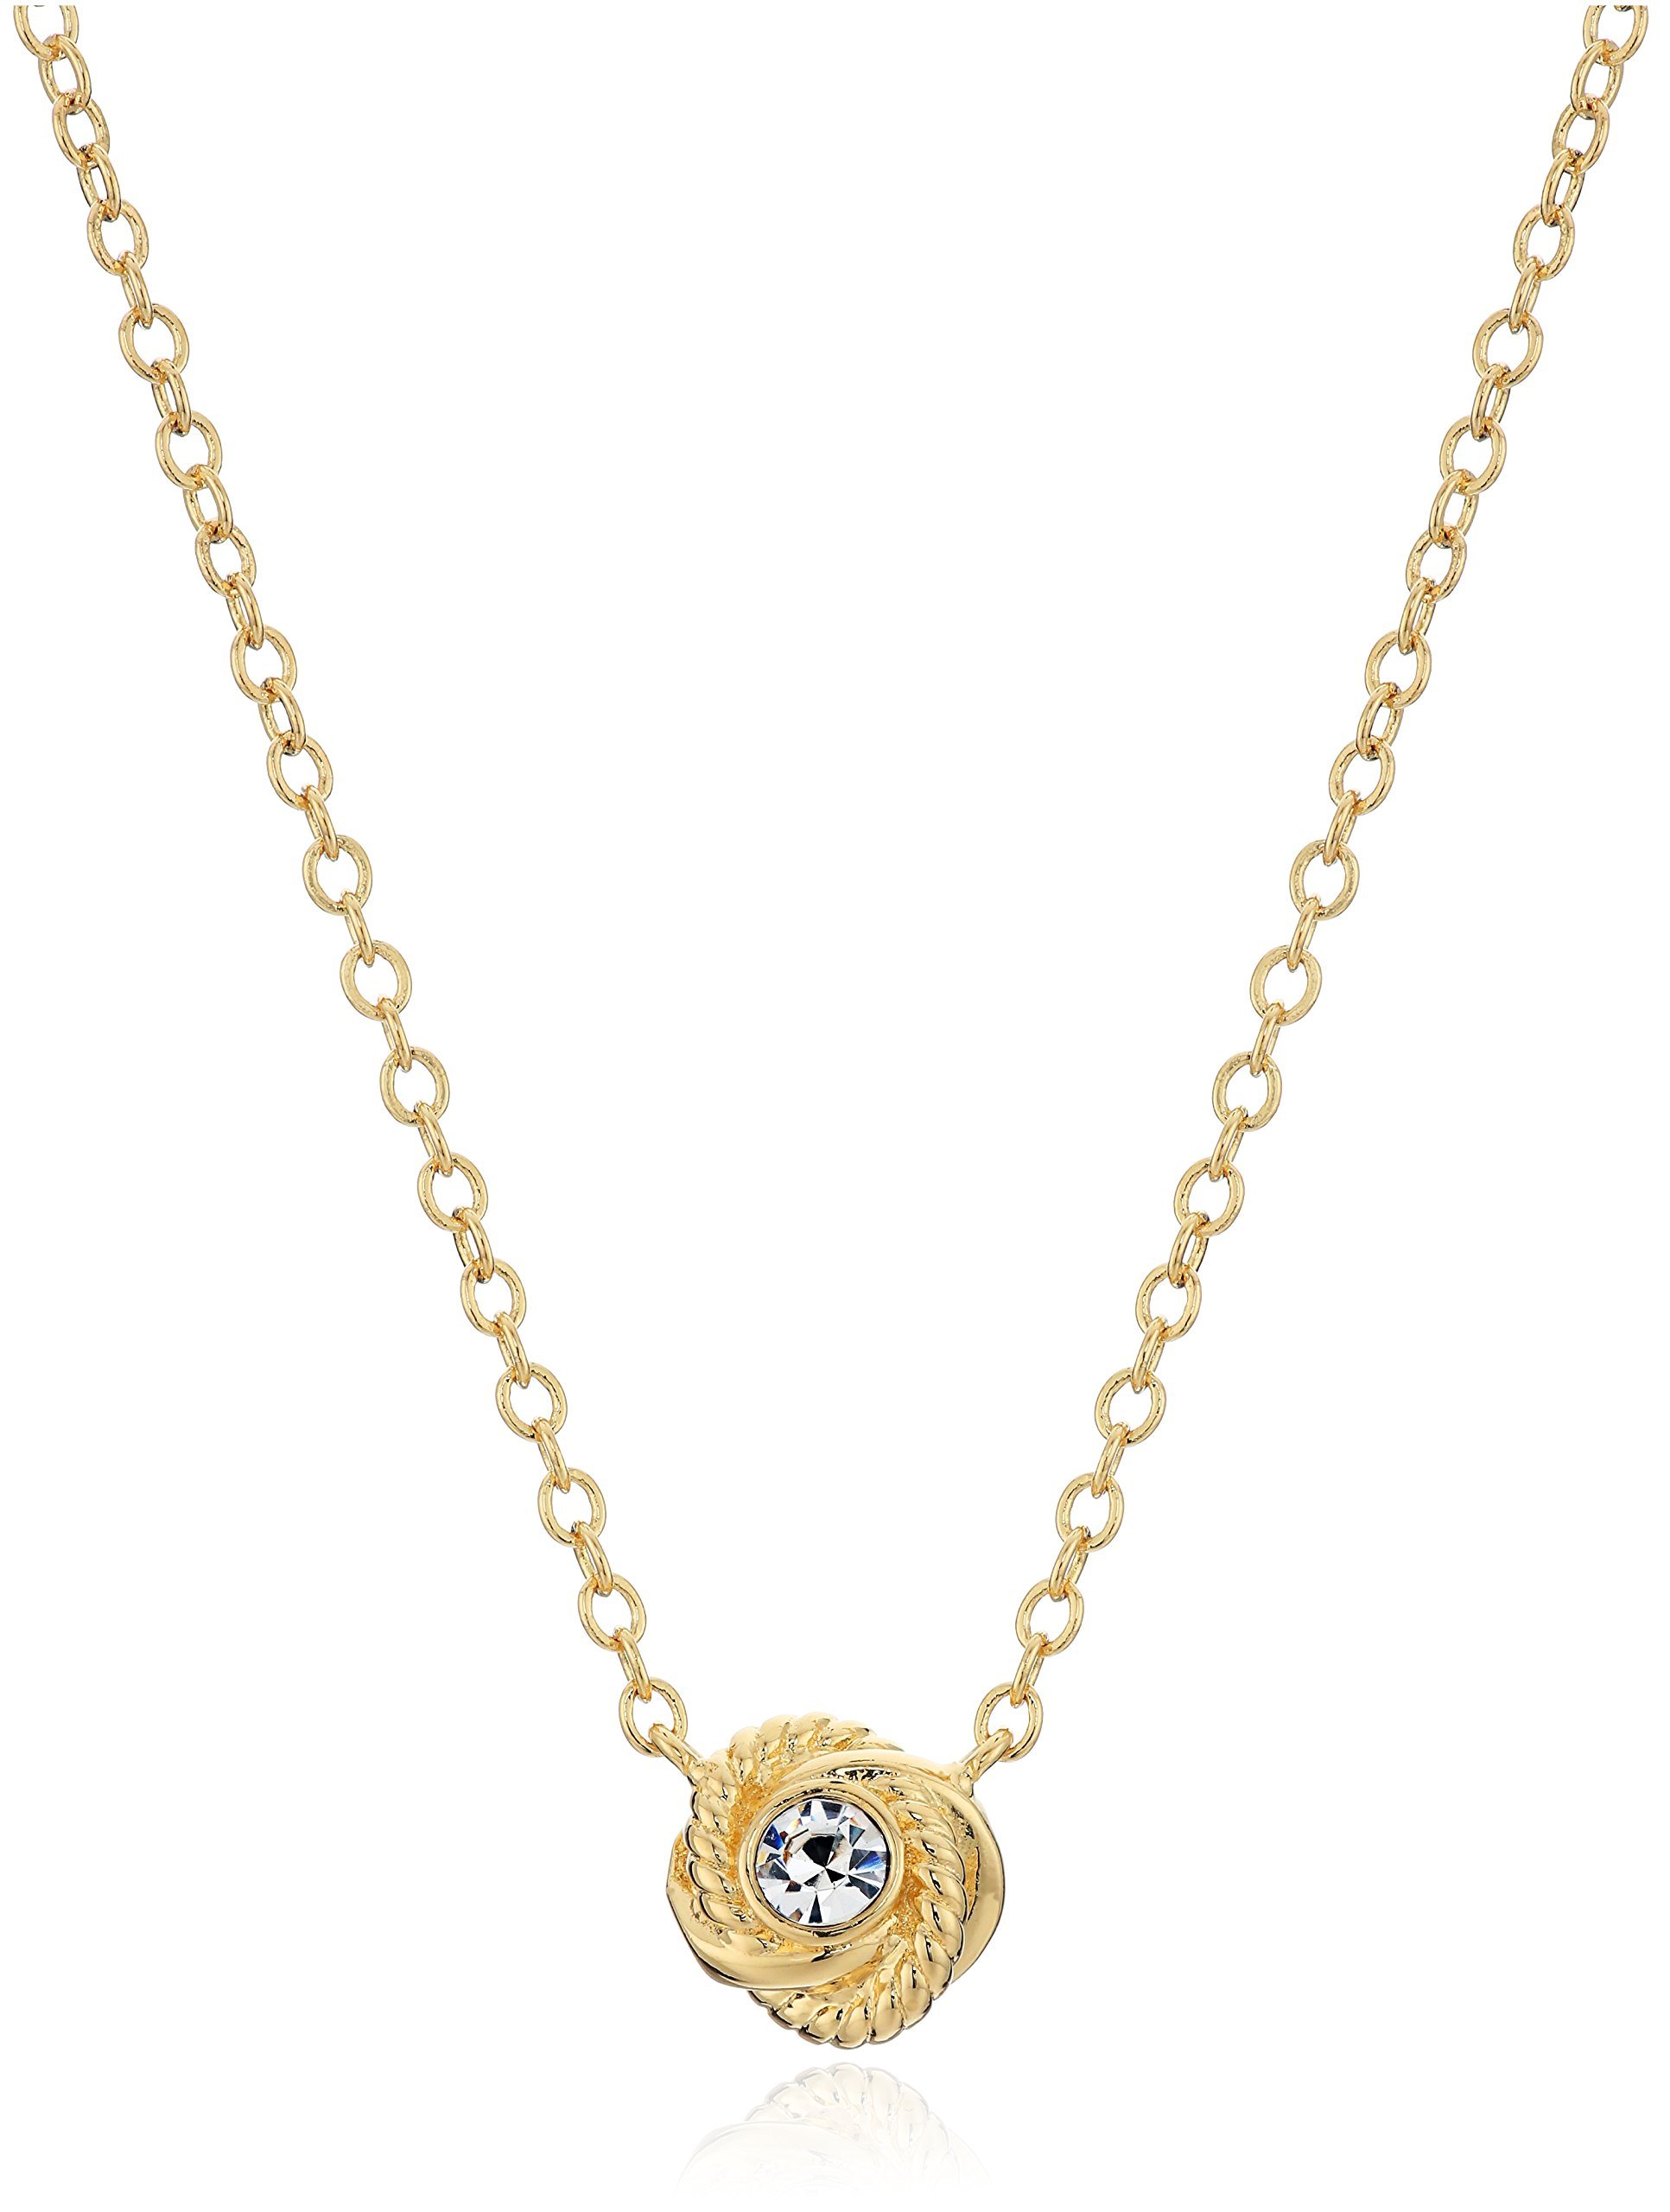 Kate Spade New York ''Infinity and Beyond Clear/Gold Knot Mini Pendant Necklace